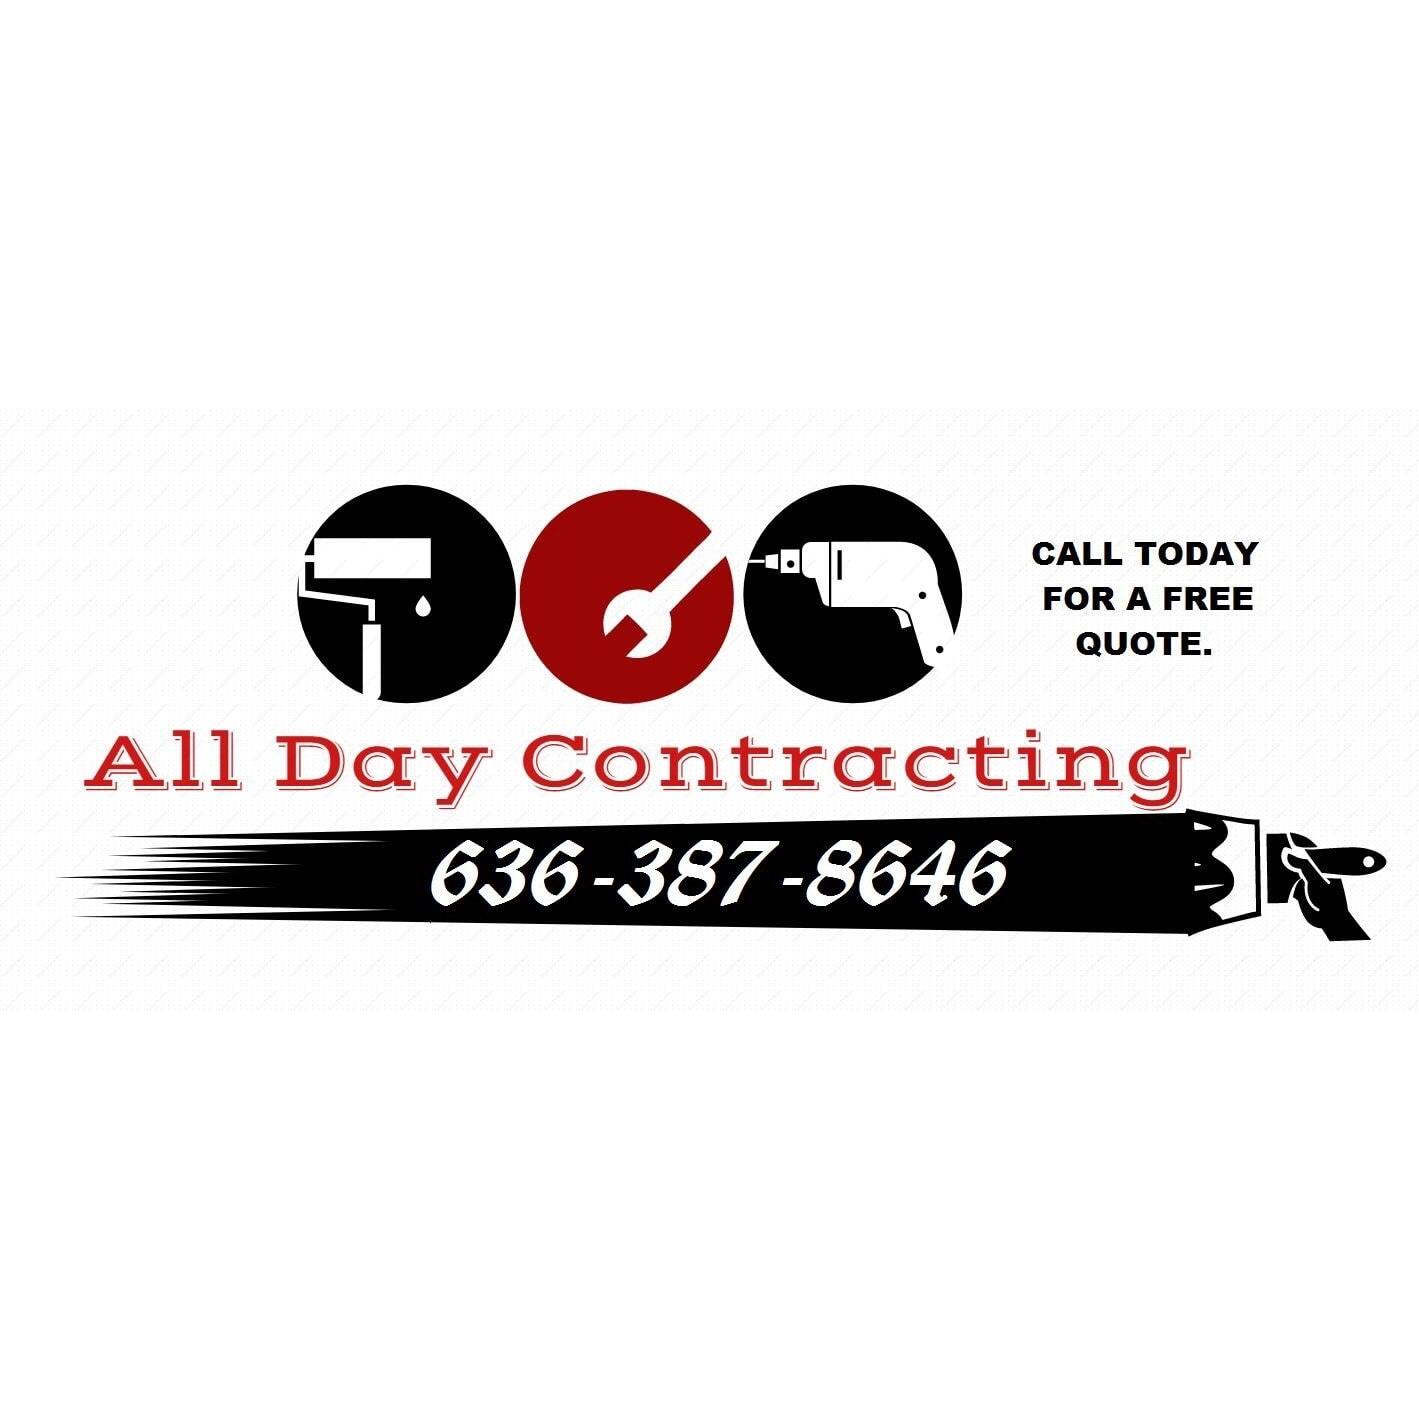 Painter in MO St. Charles 63301 All Day Contracting 130 Ameristar Blvd APT 310 (636)387-8646